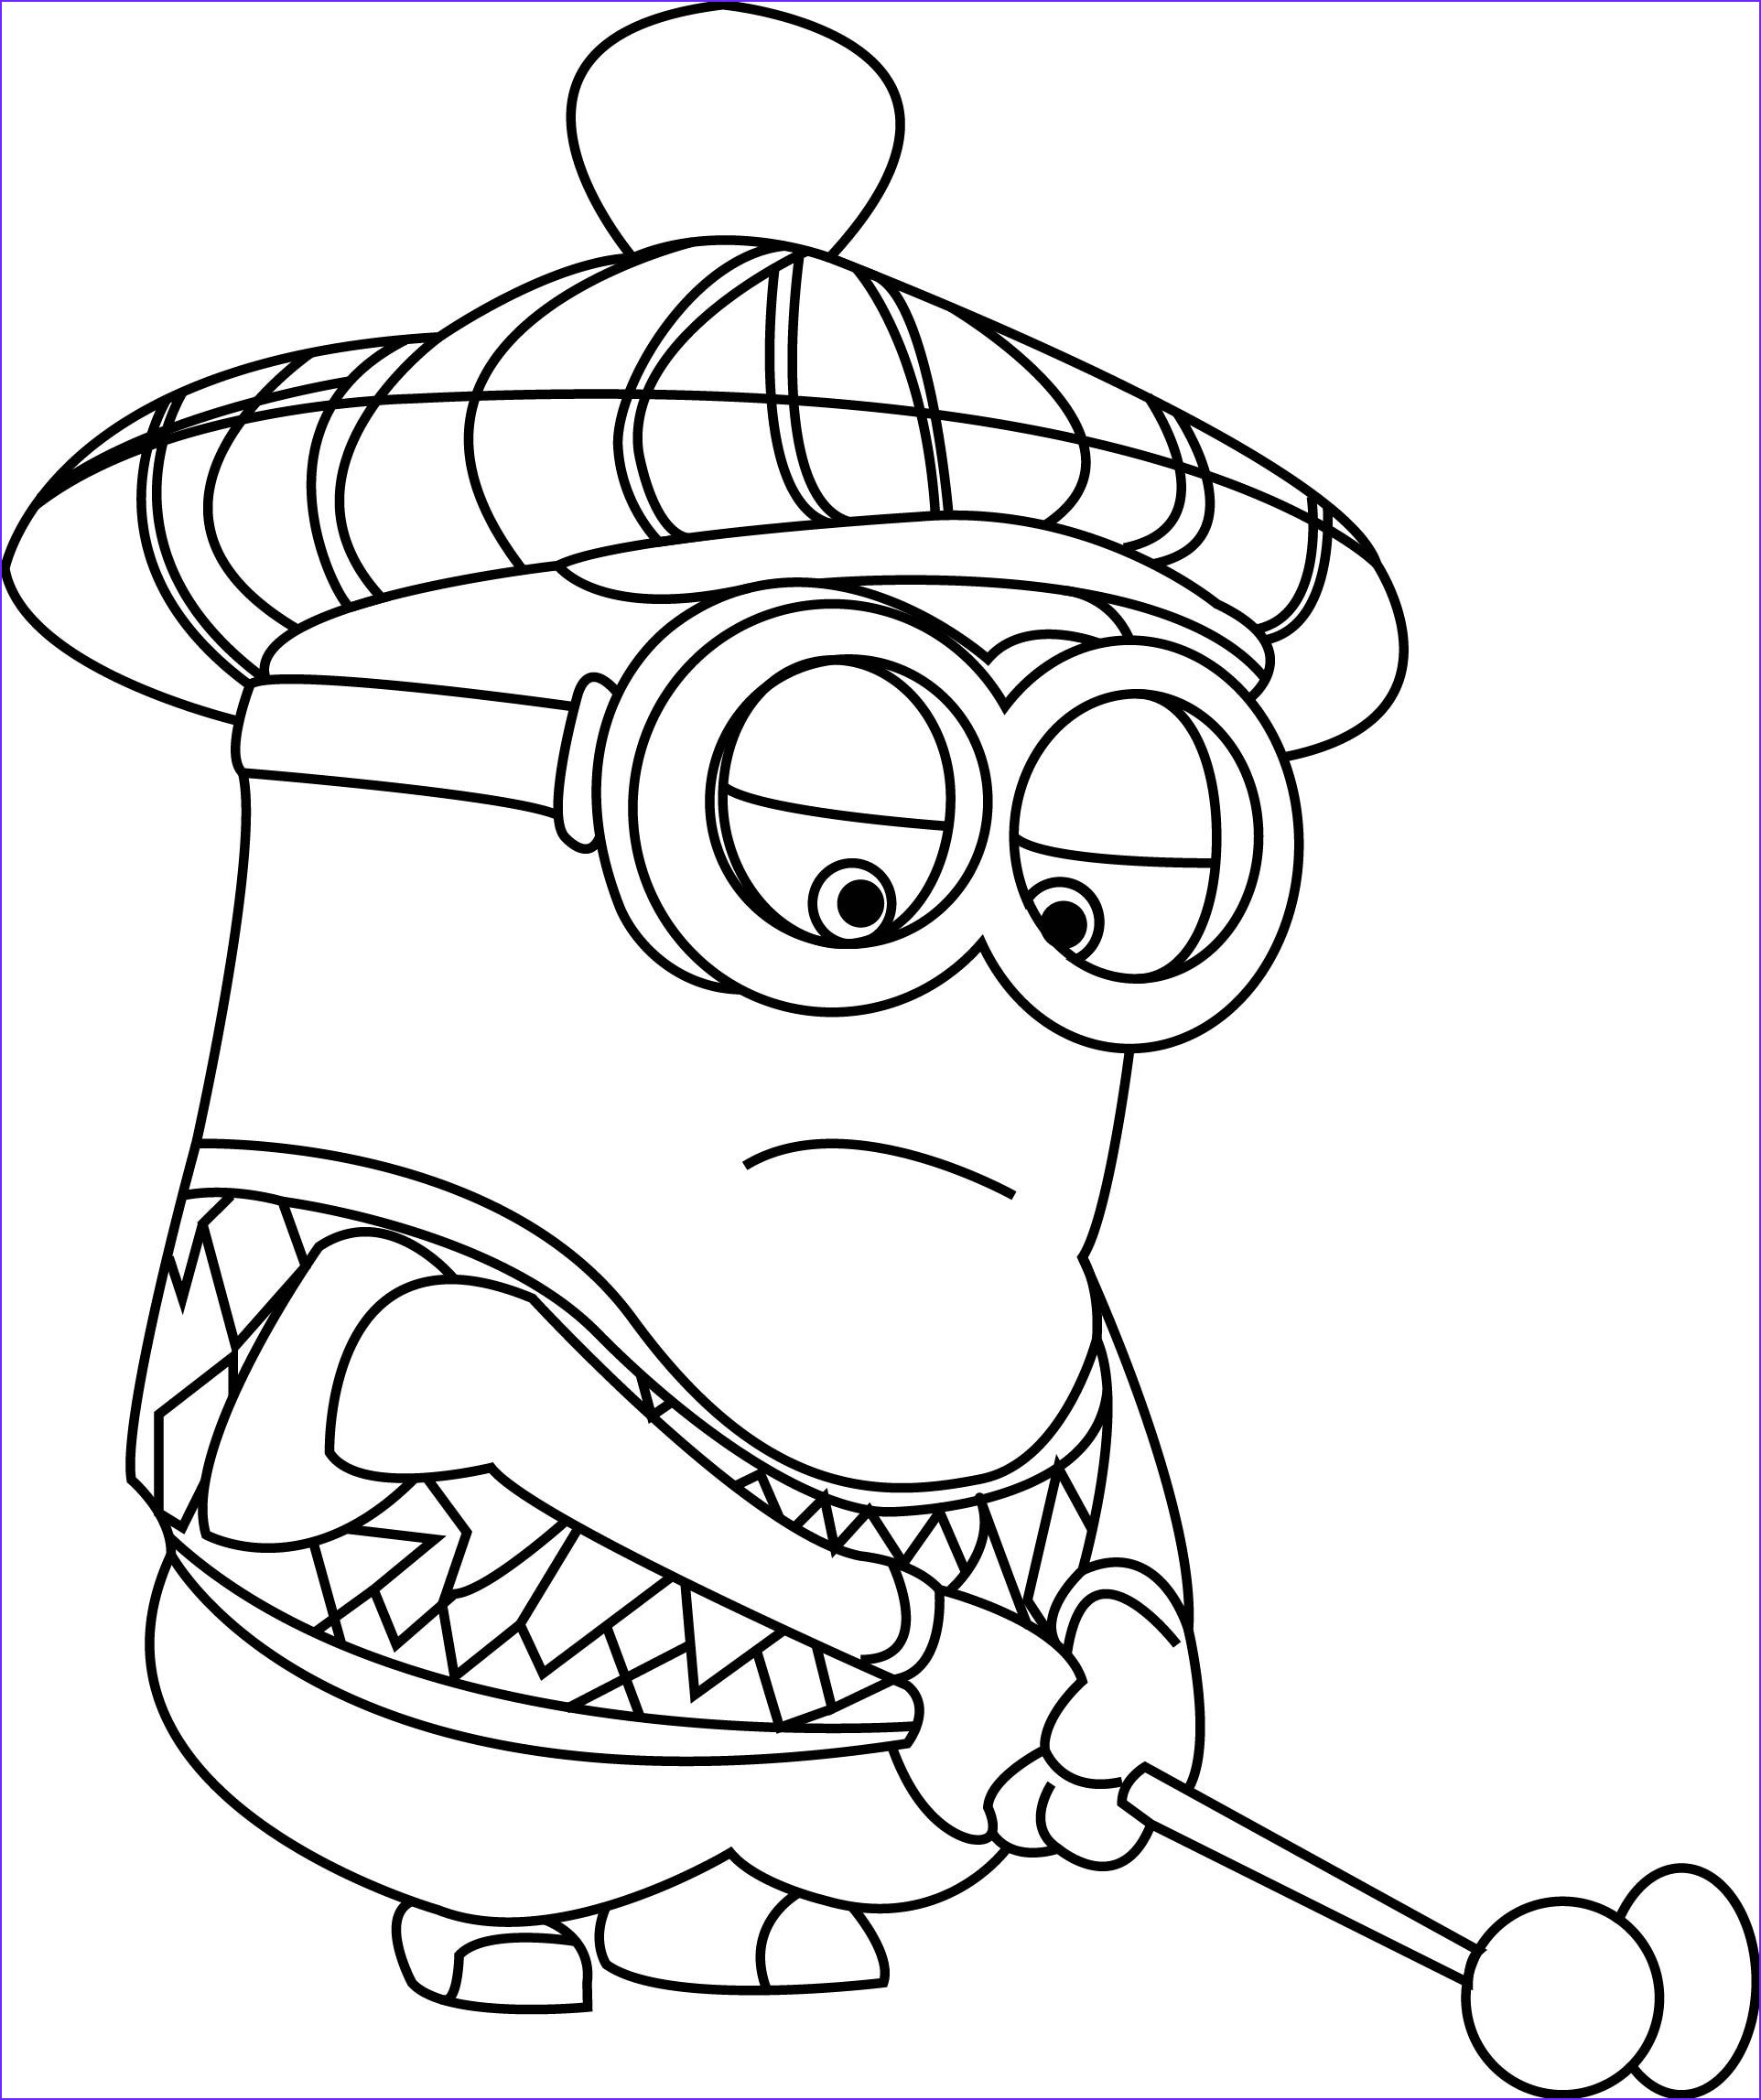 Minion Coloring Pages Inspirational Stock Despicable Me Golfer Minion Coloring Pages